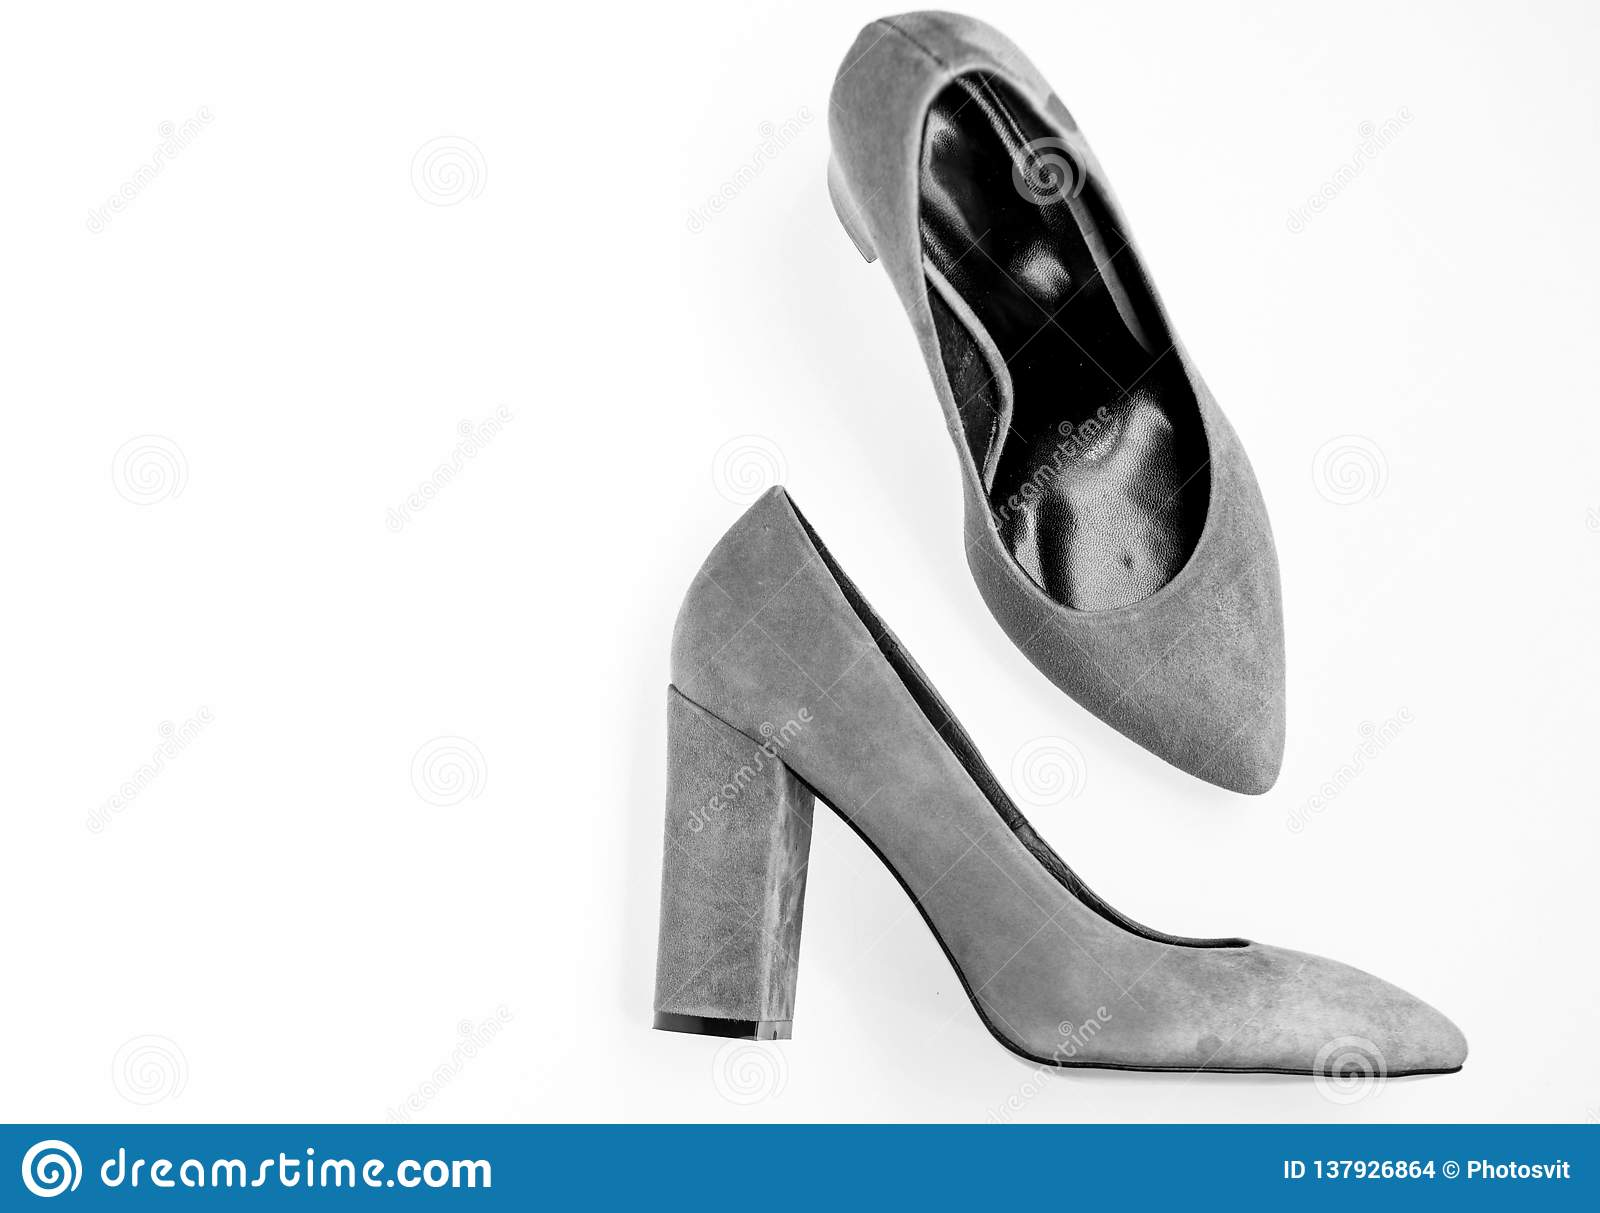 Comfortable High Heels Concept. Pair Of Fashionable High